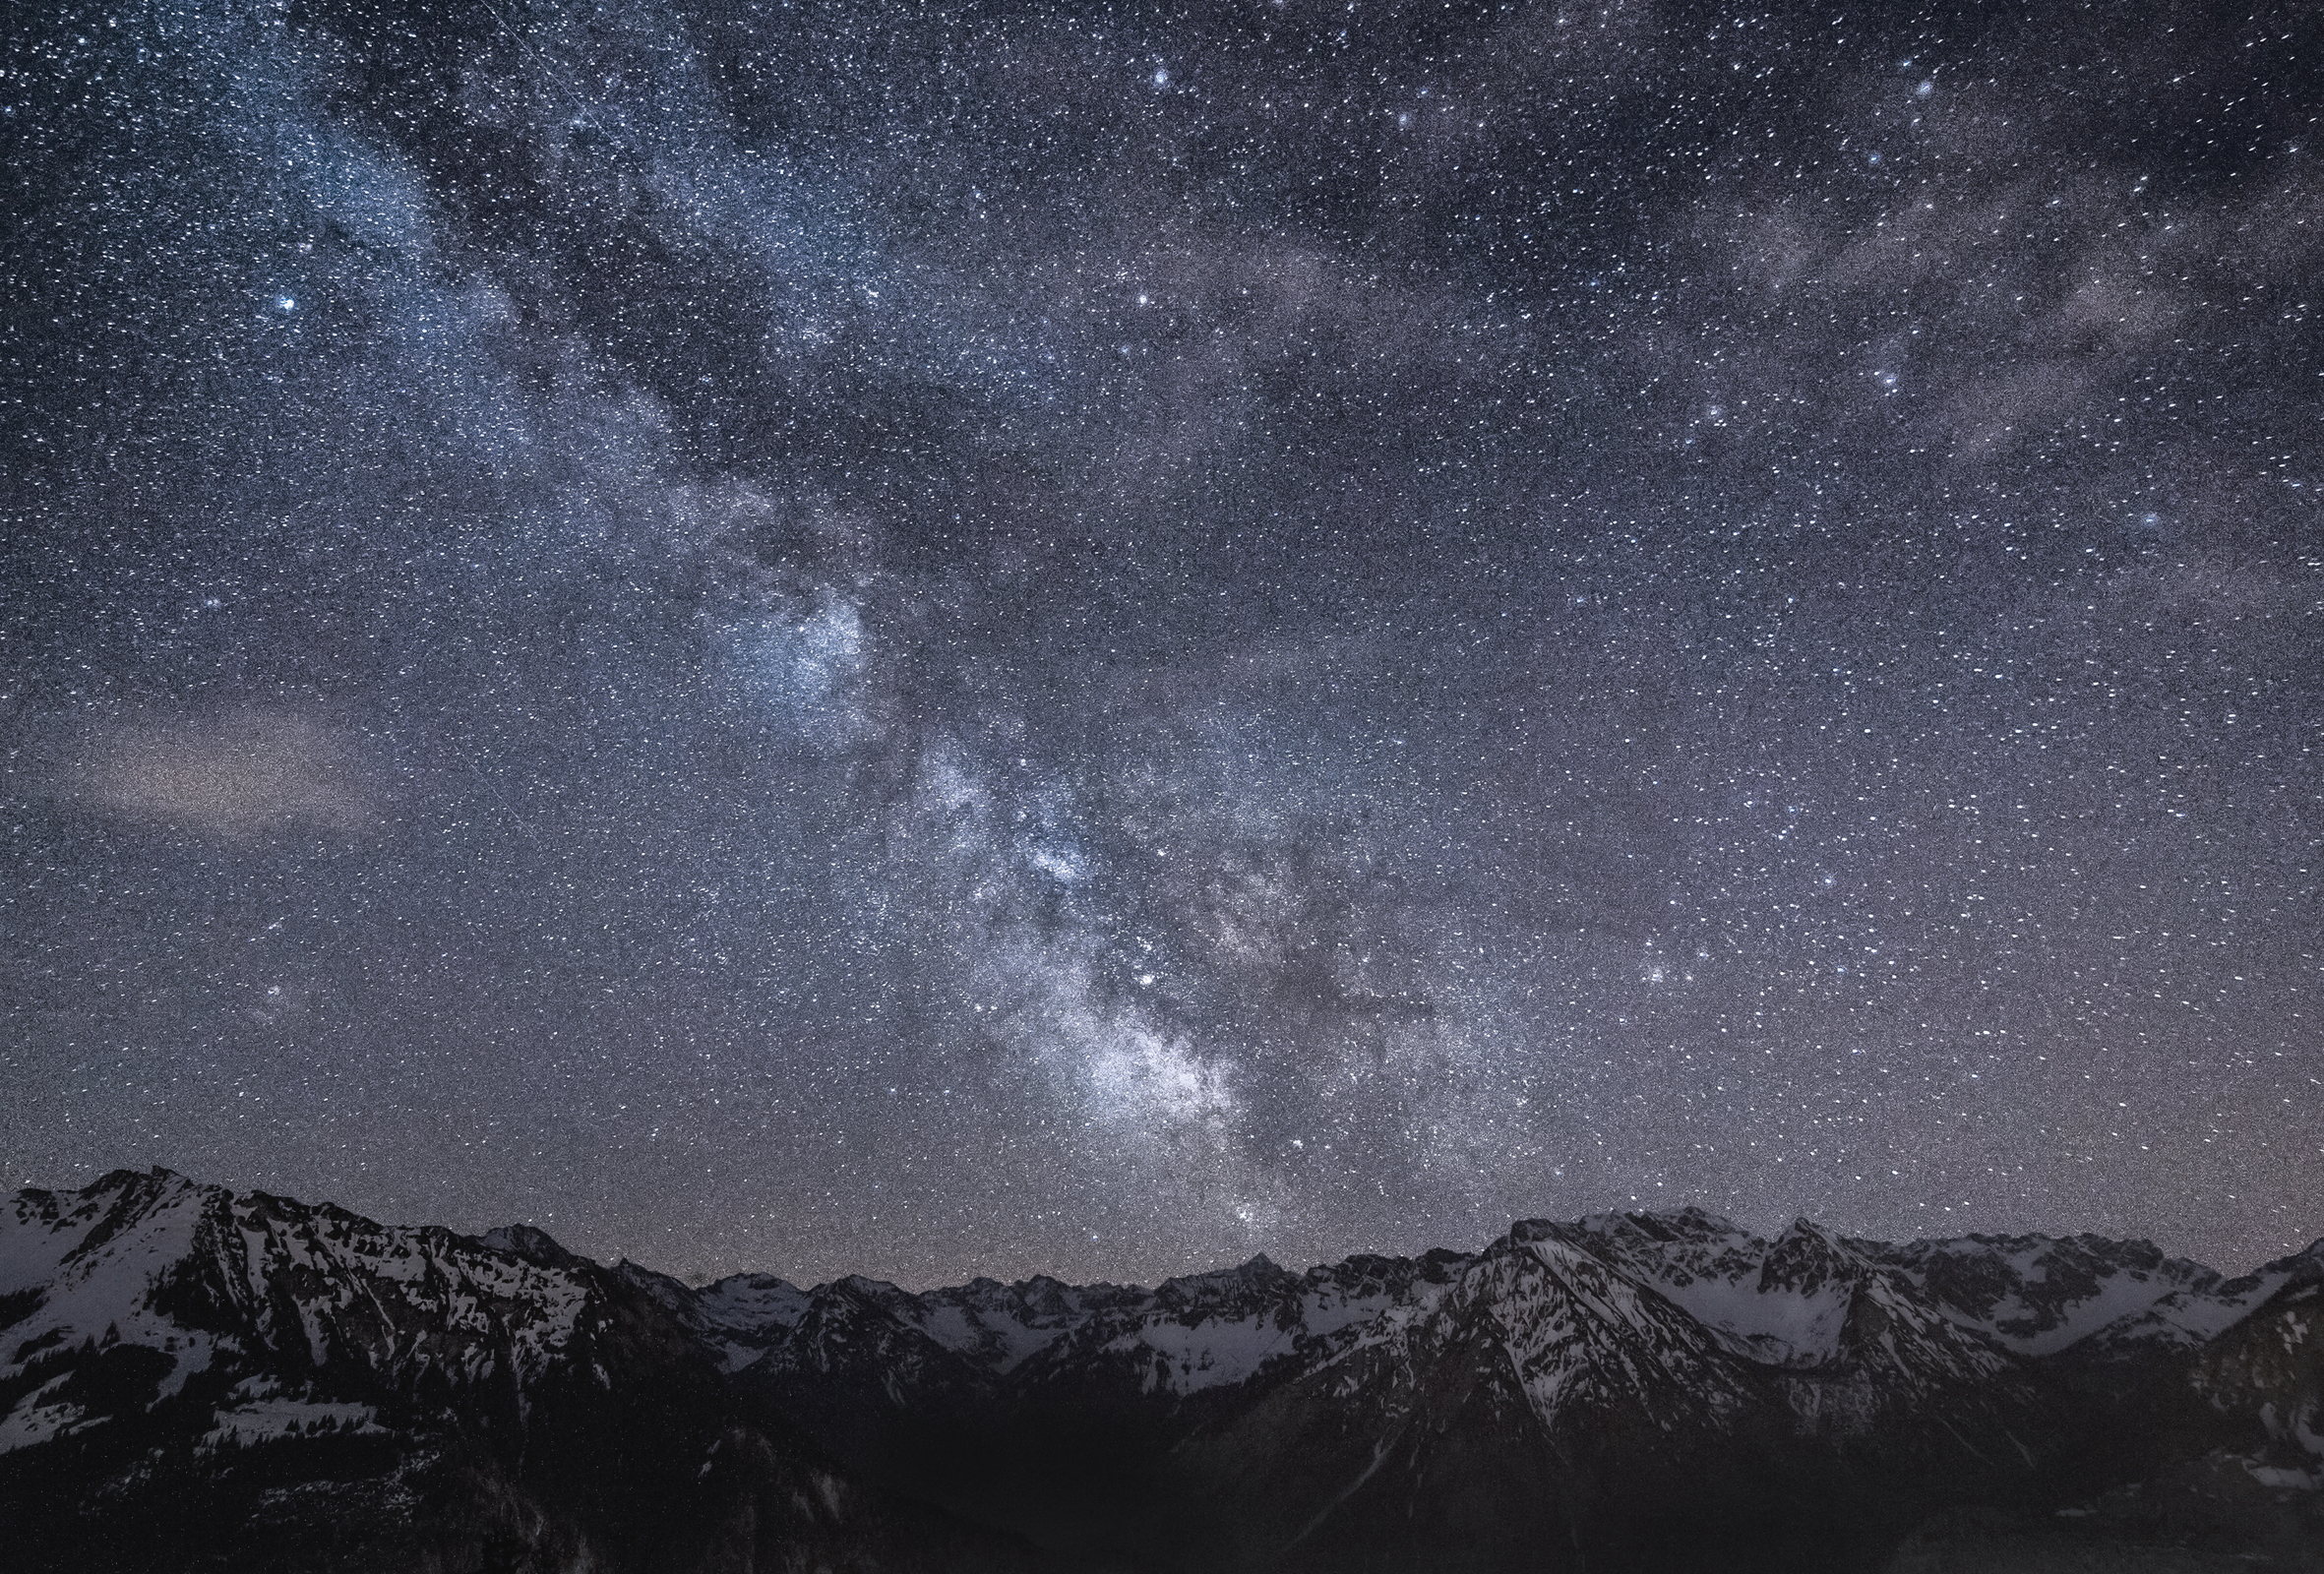 23233_miscellaneous_milky_way_view_from_earth.jpg